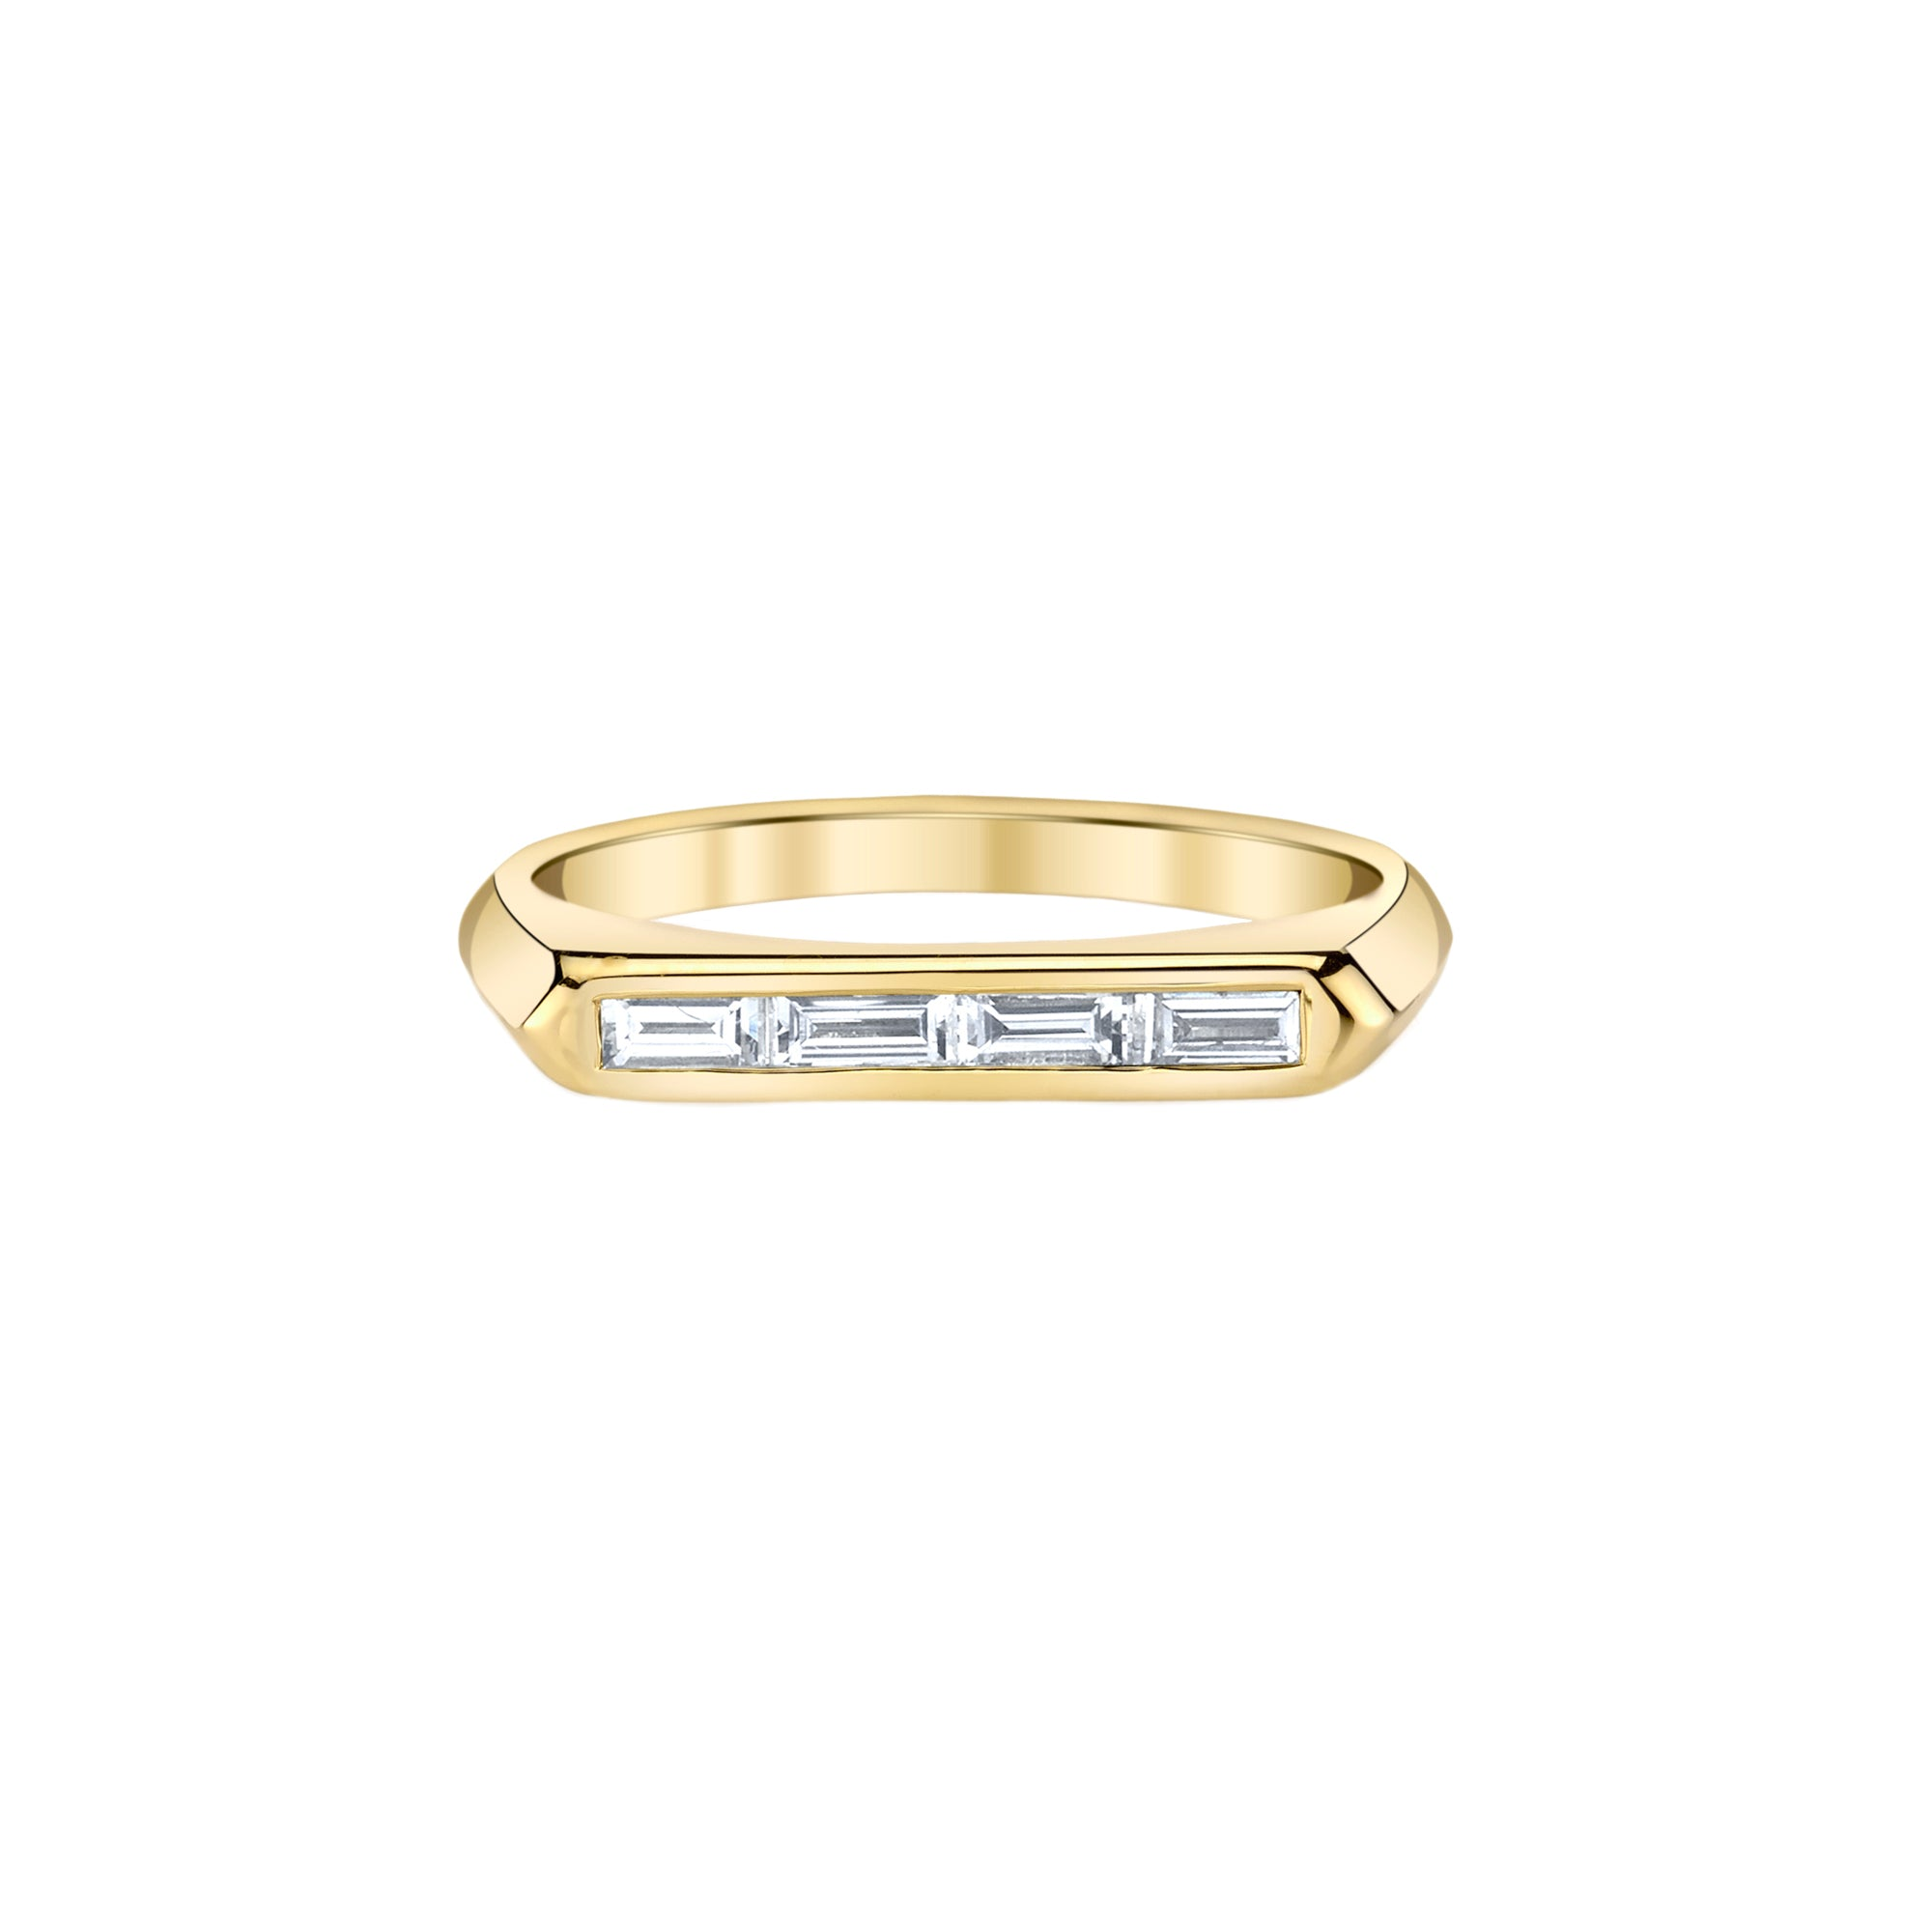 Lizzie Mandler White Baguette Knife Edge Ring - Rings - Broken English Jewelry